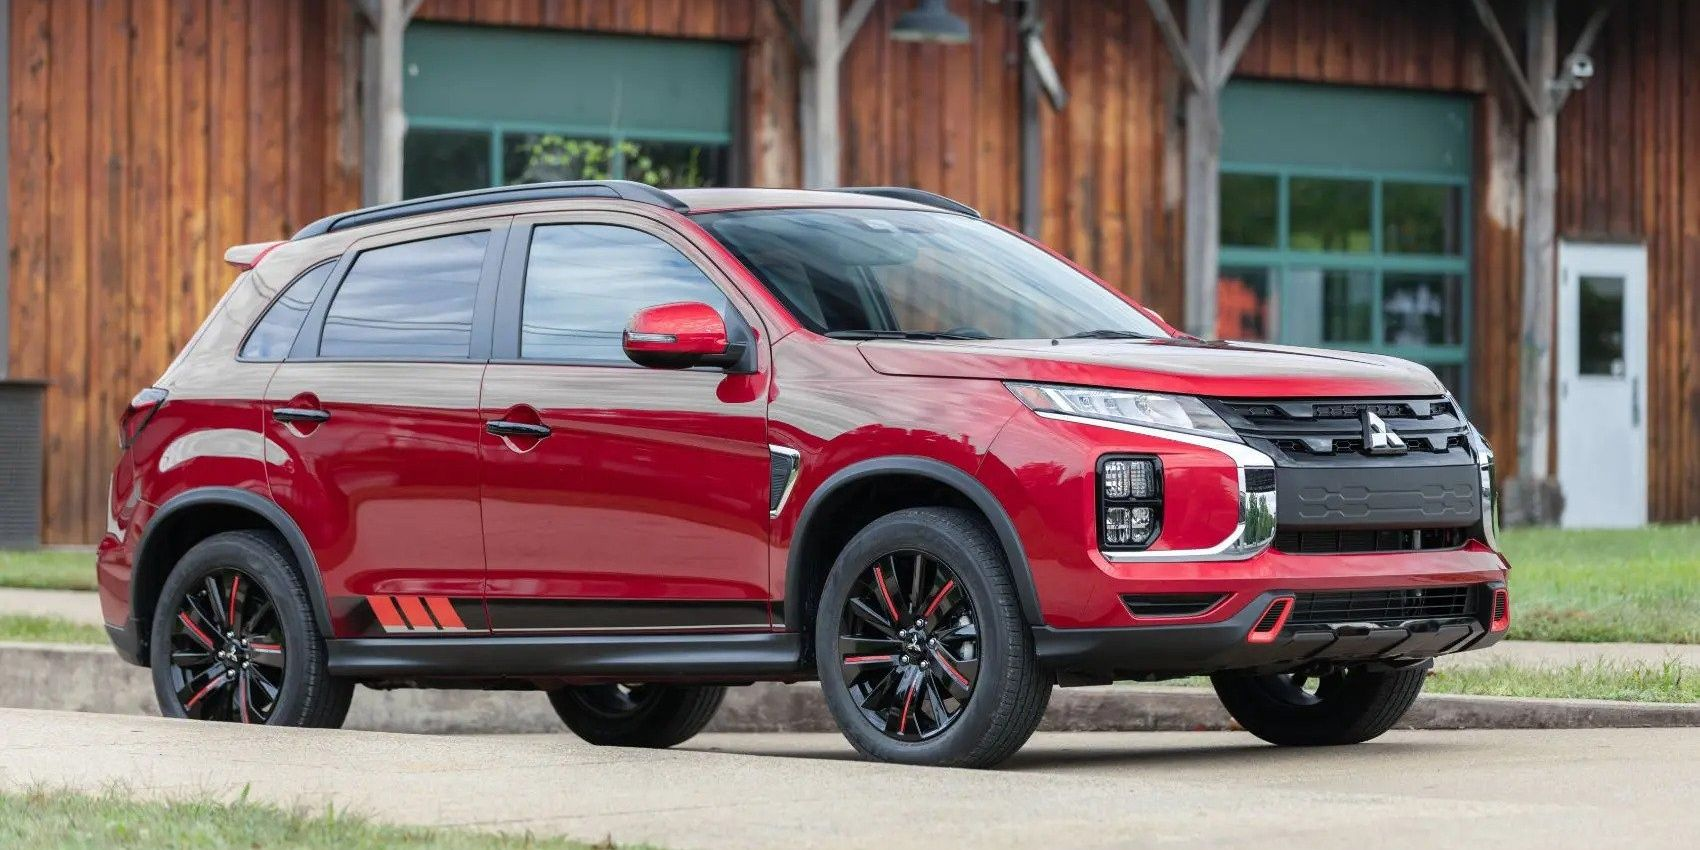 10 Worst Crossover SUVs On Sale In 2021